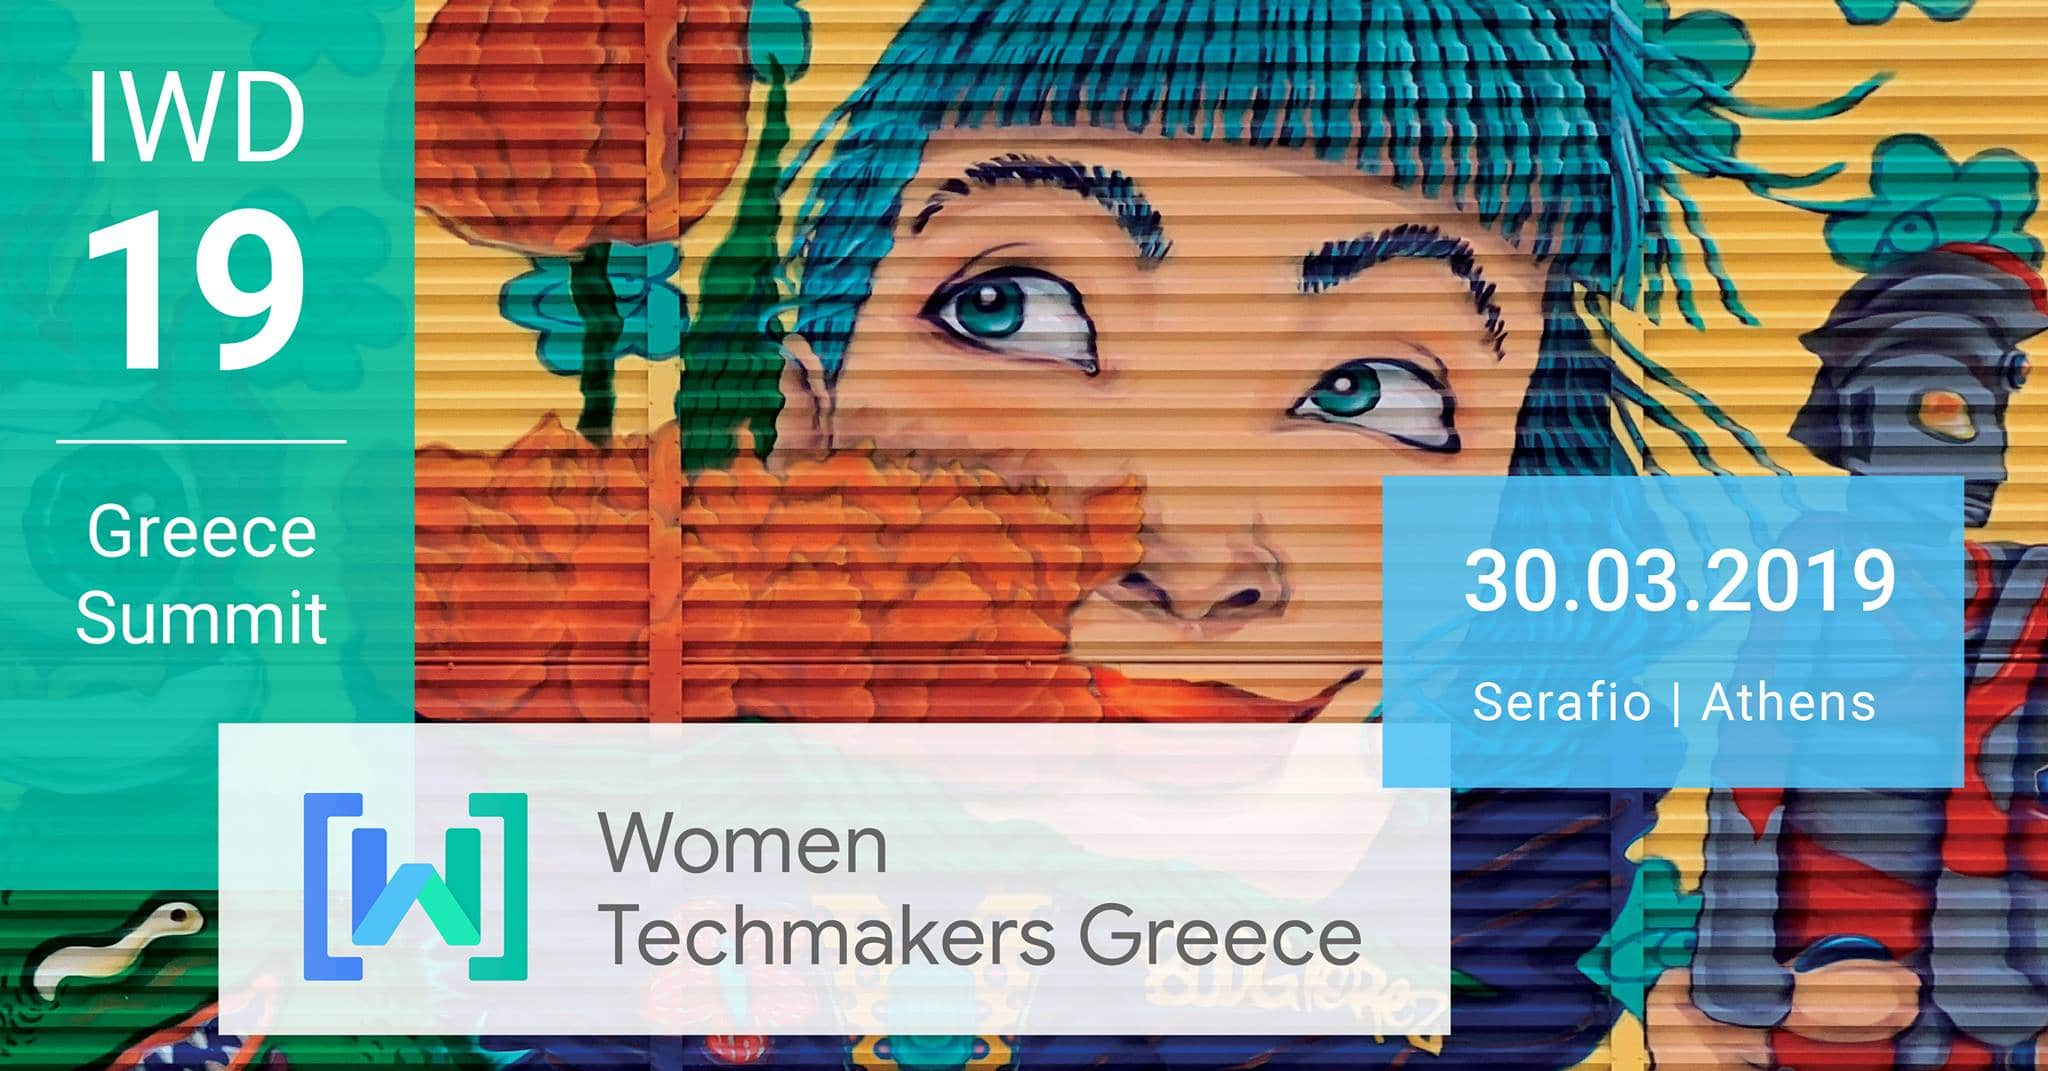 IWD 19 | Greece Summit